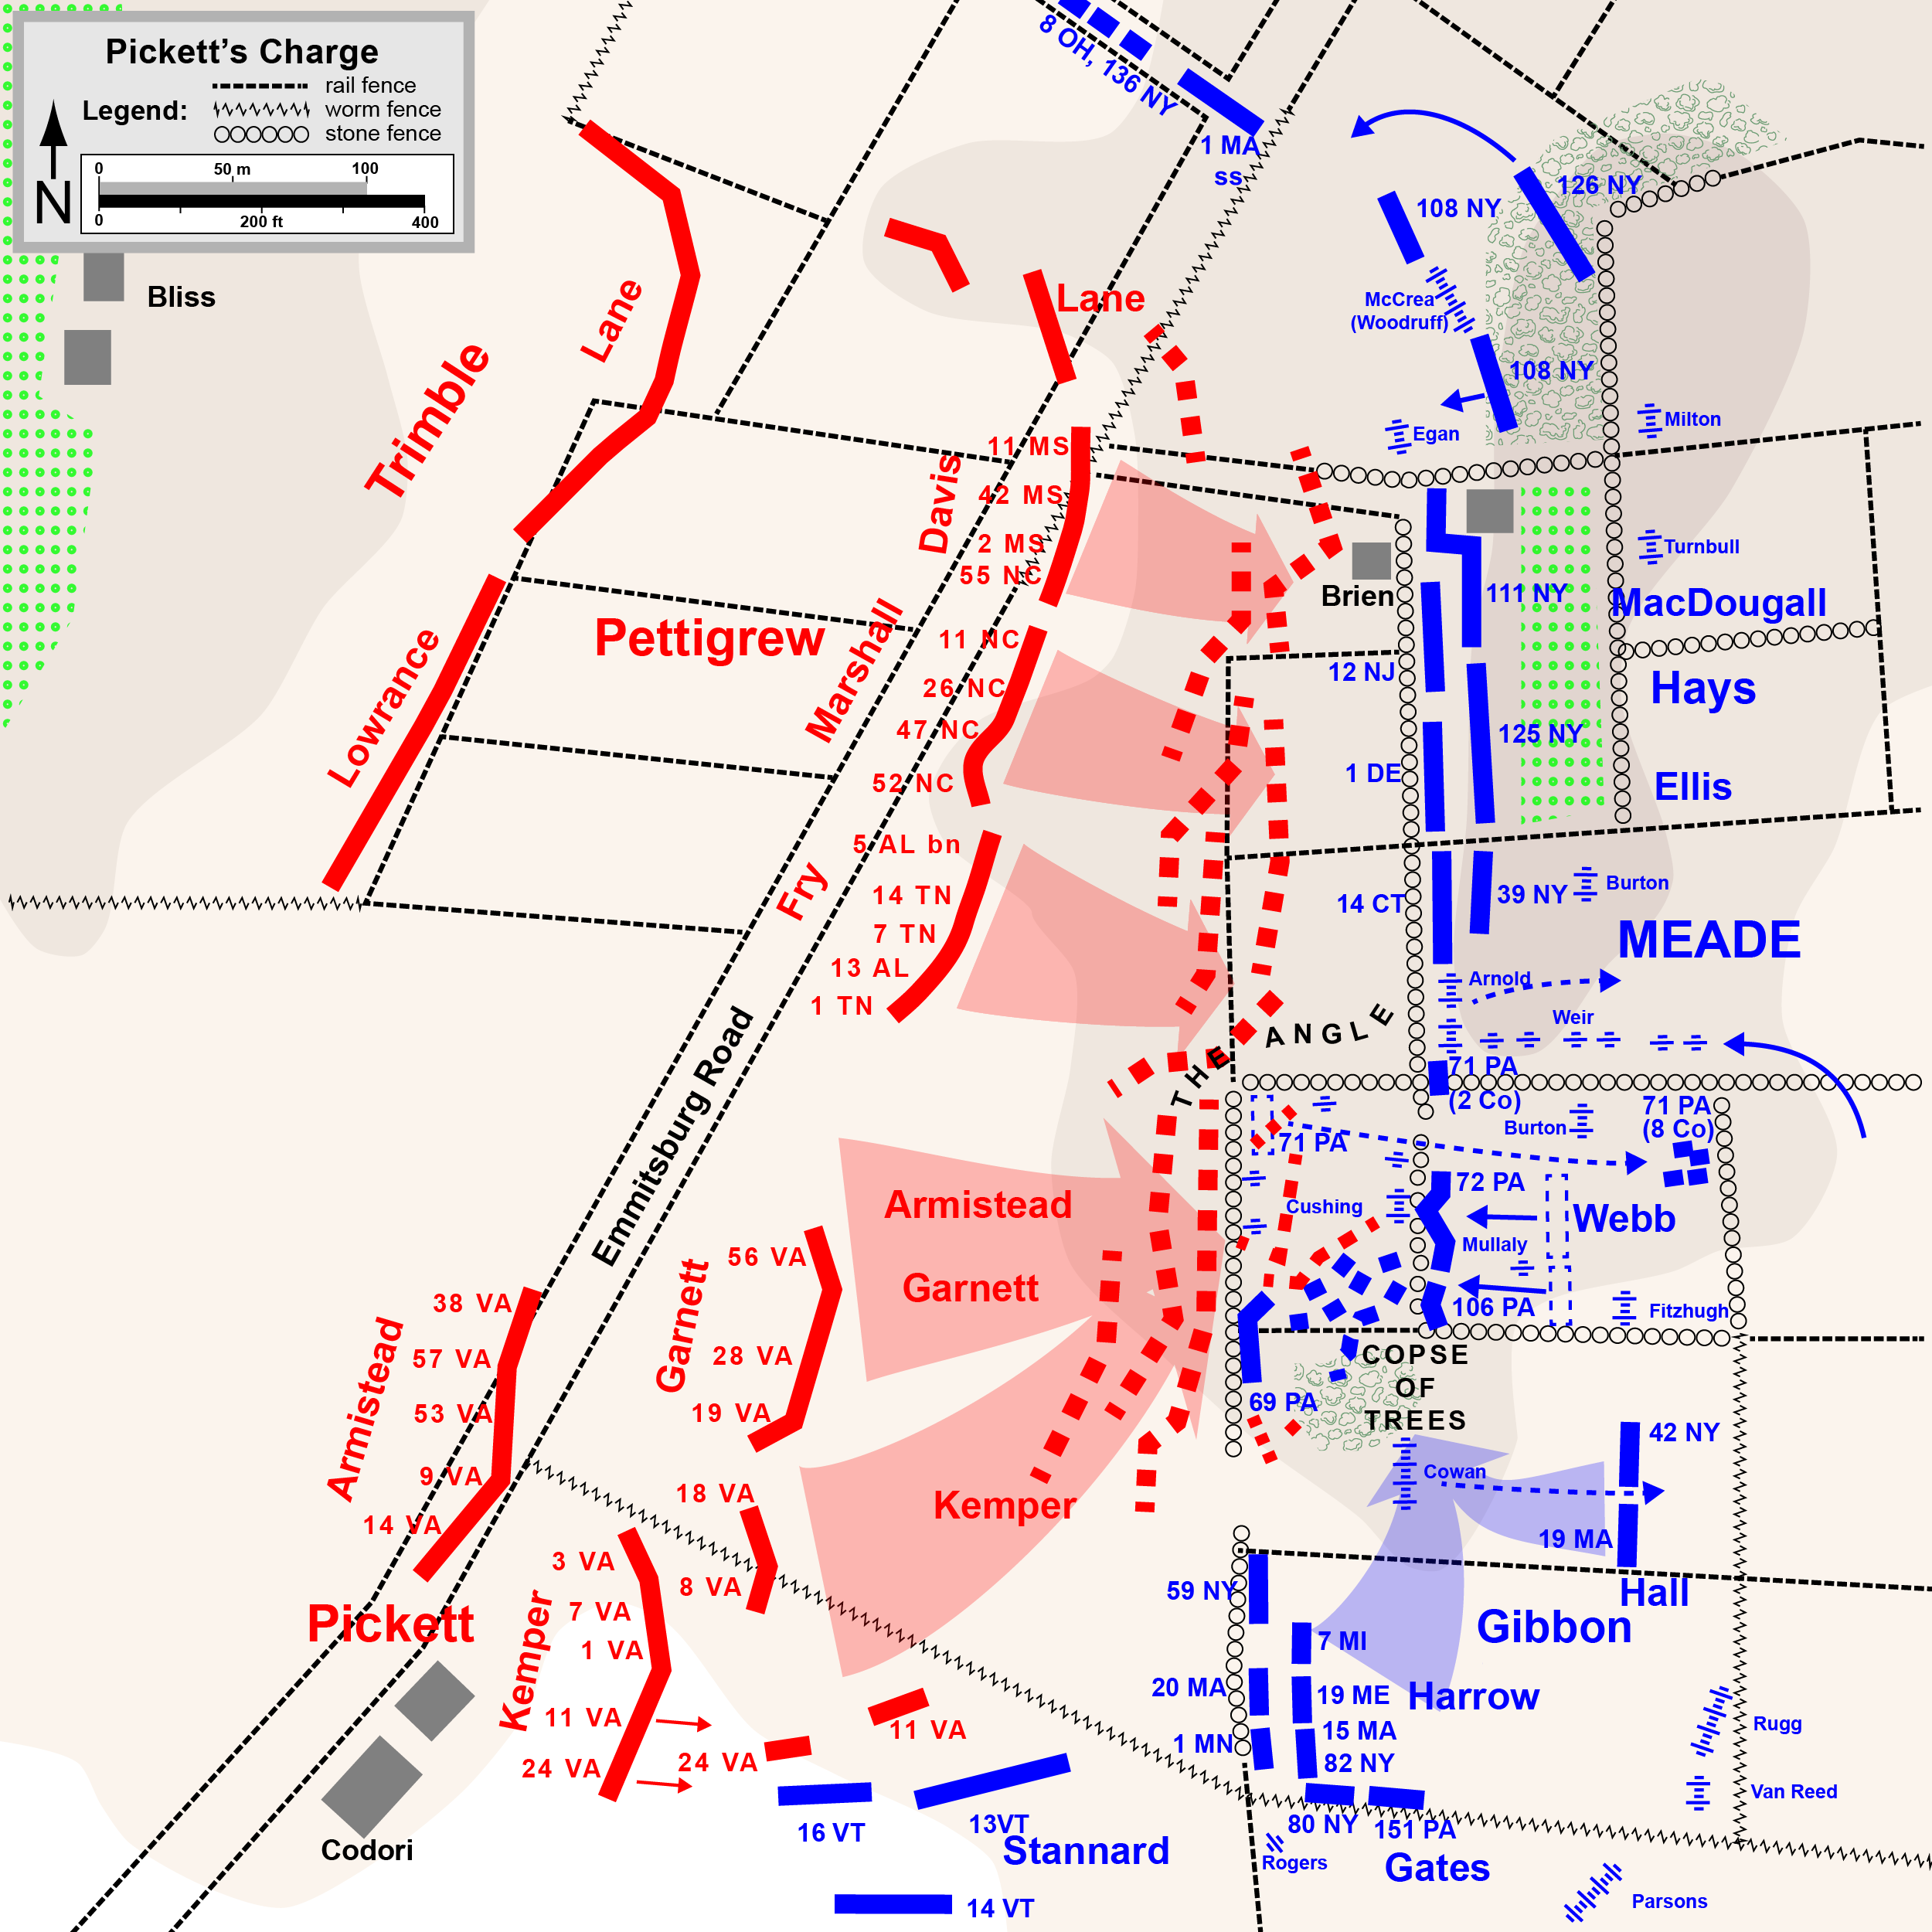 Hal Jespersen's map of Pickett's Charge